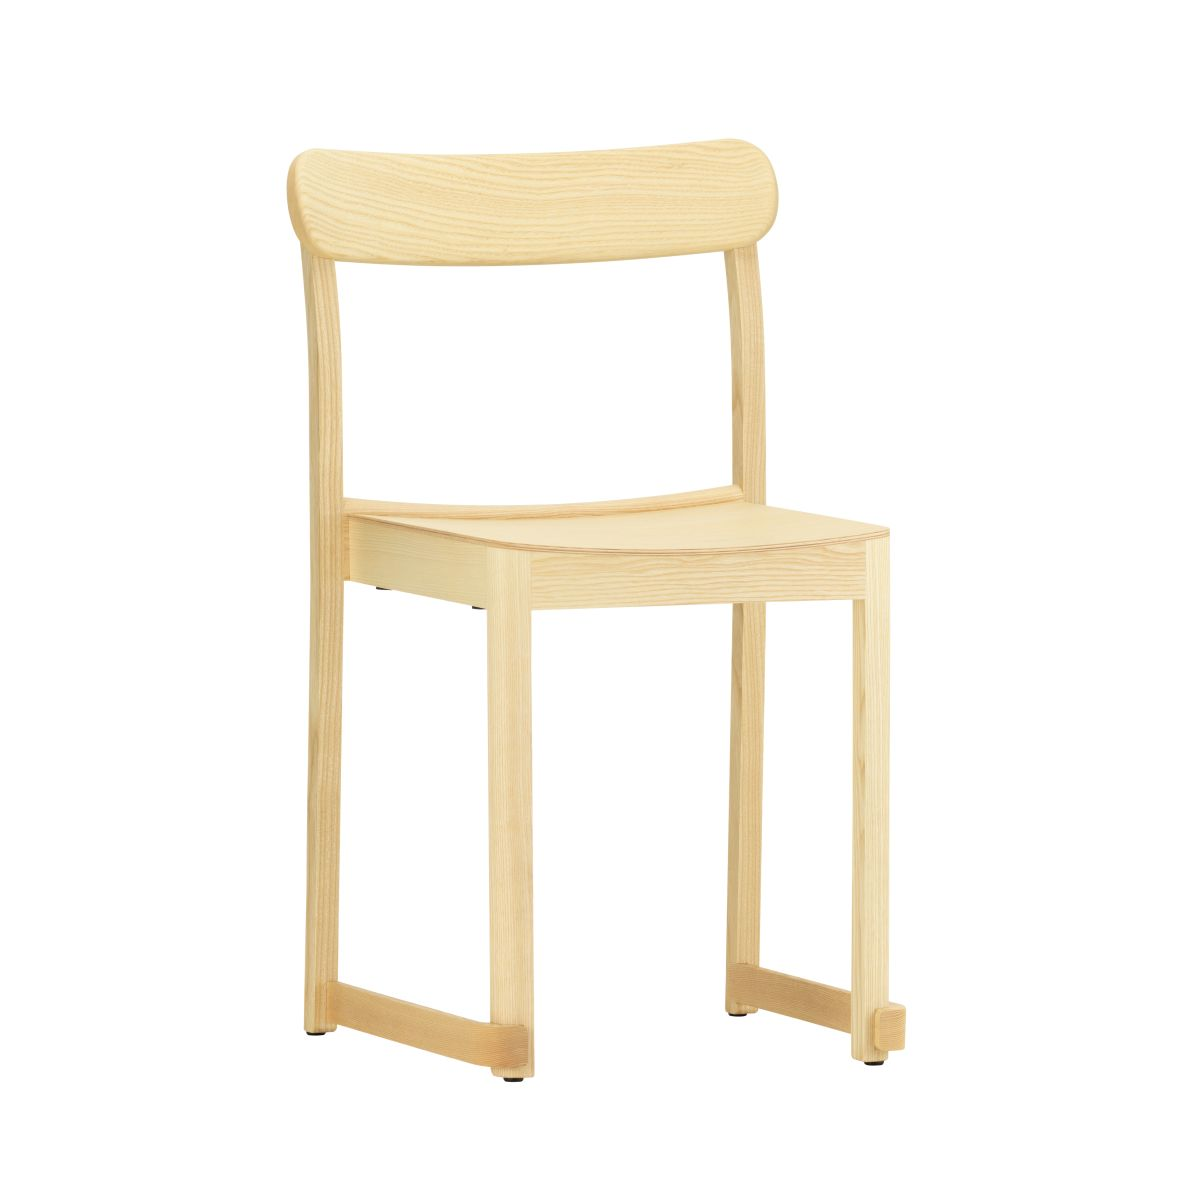 At Home Chairs Artek Atelier Chair